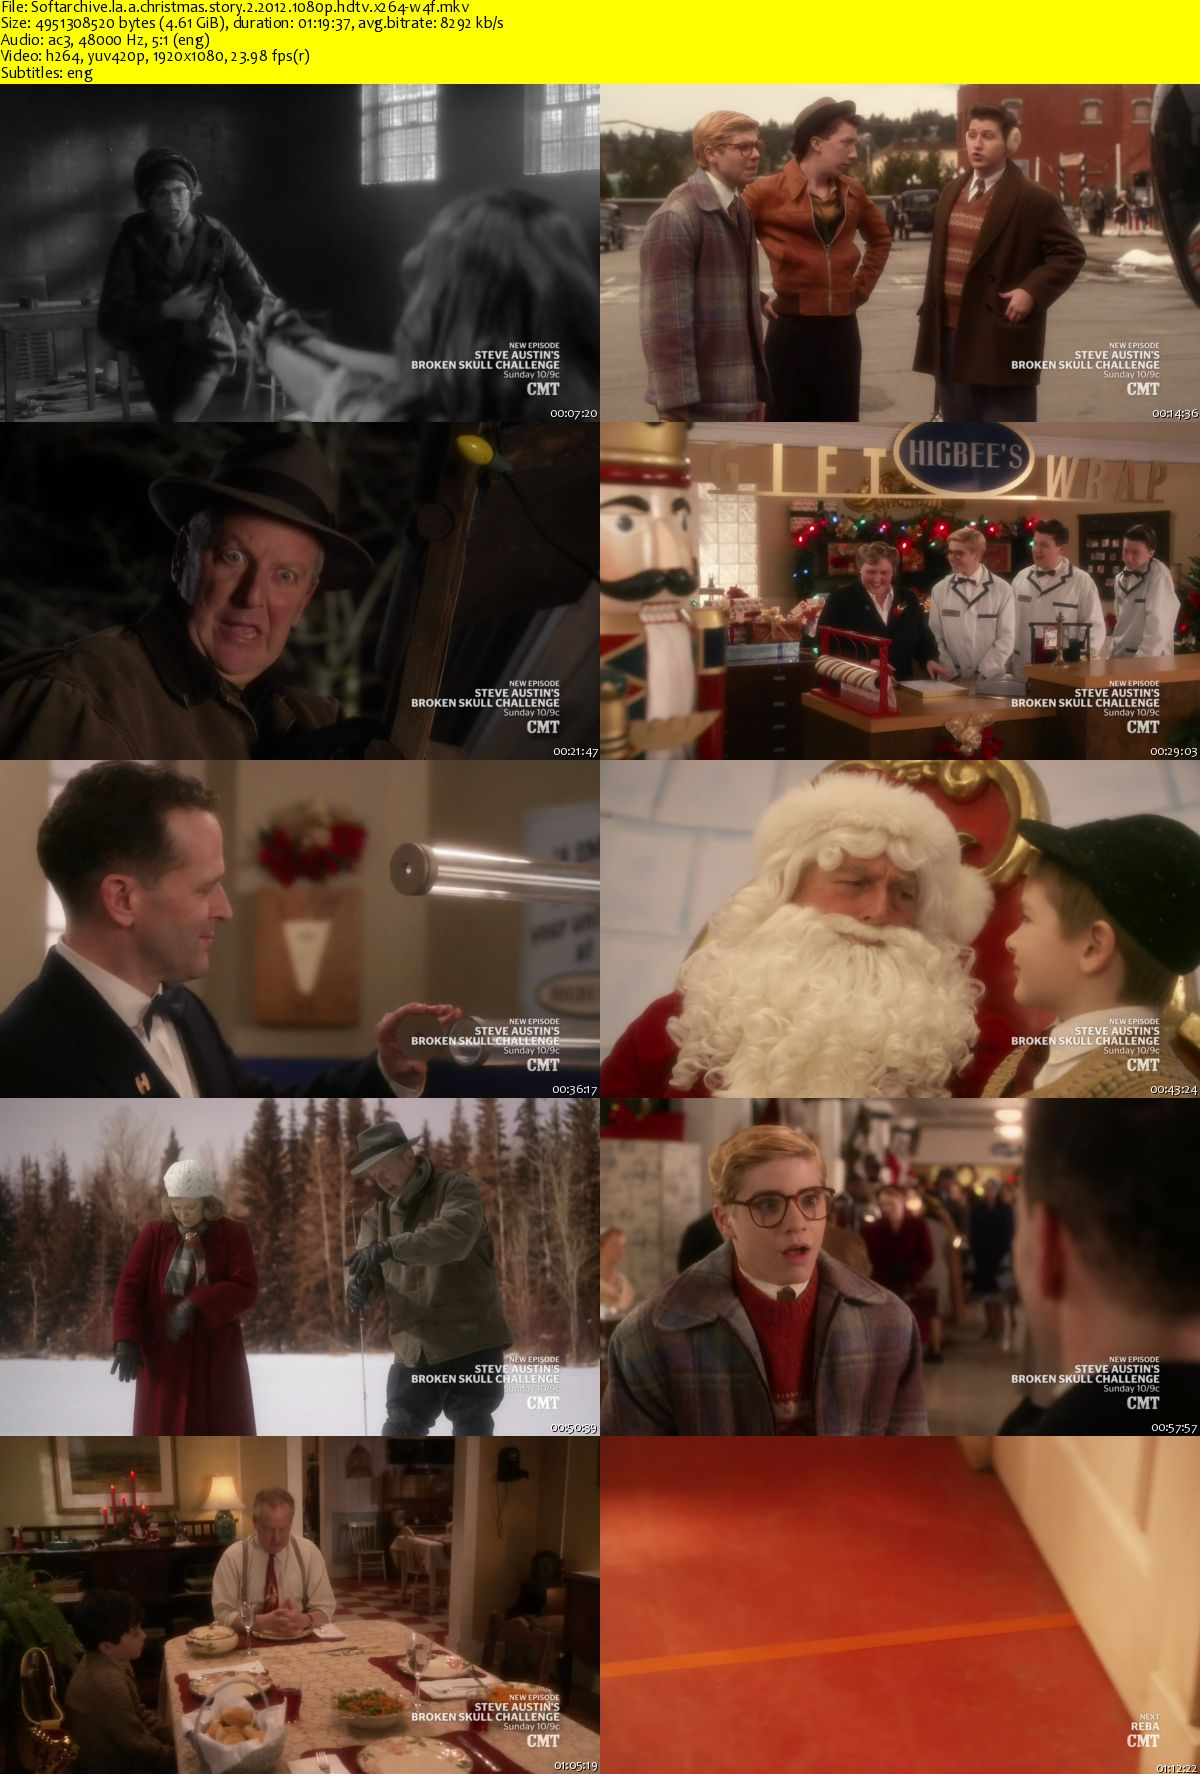 Christmas Story 2.Download A Christmas Story 2 2012 1080p Hdtv X264 W4f